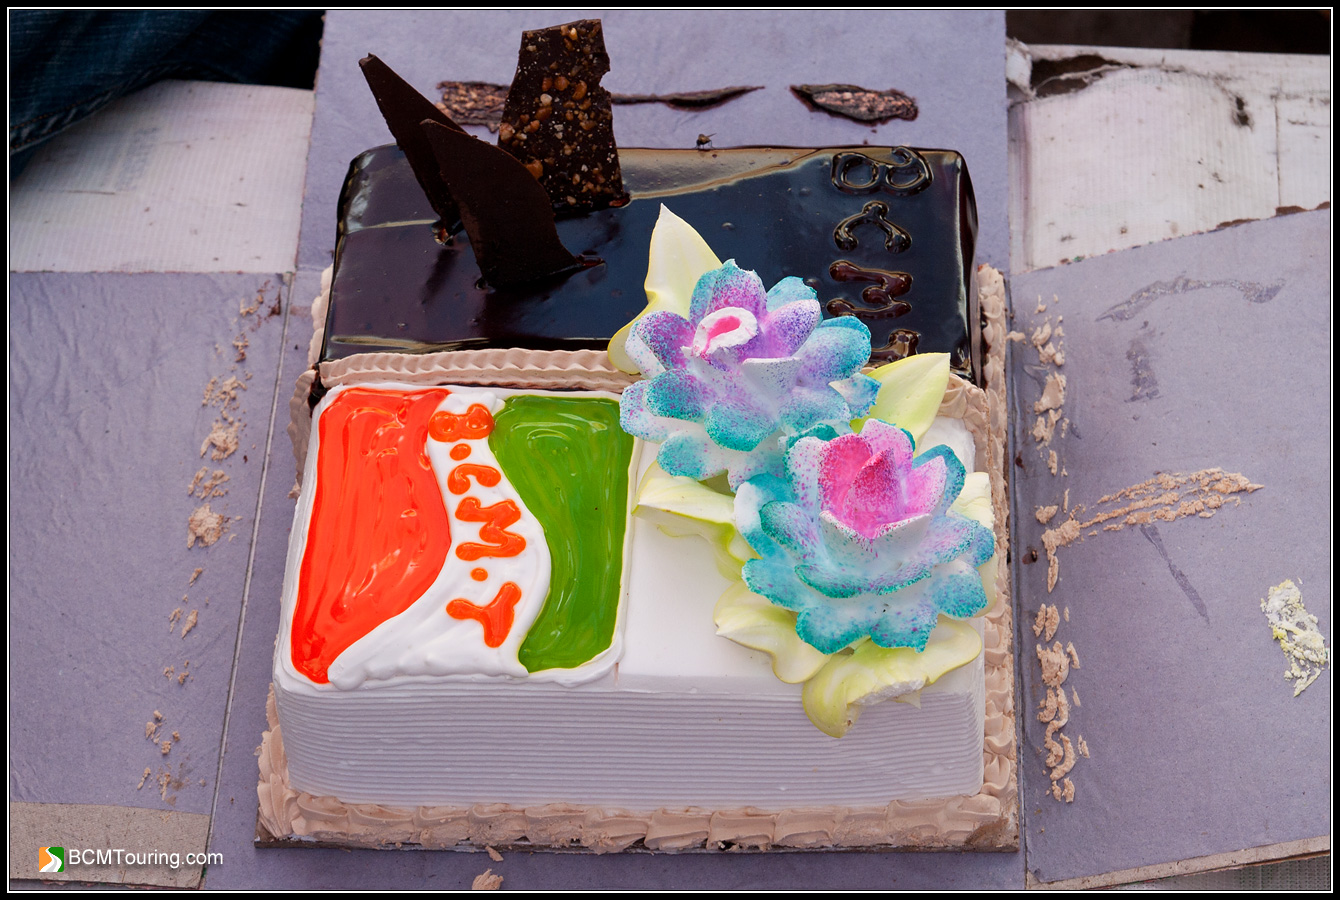 Cake Images For Yogesh : Delhi Meet, 7-4-2013 Page 13 India Travel Forum ...